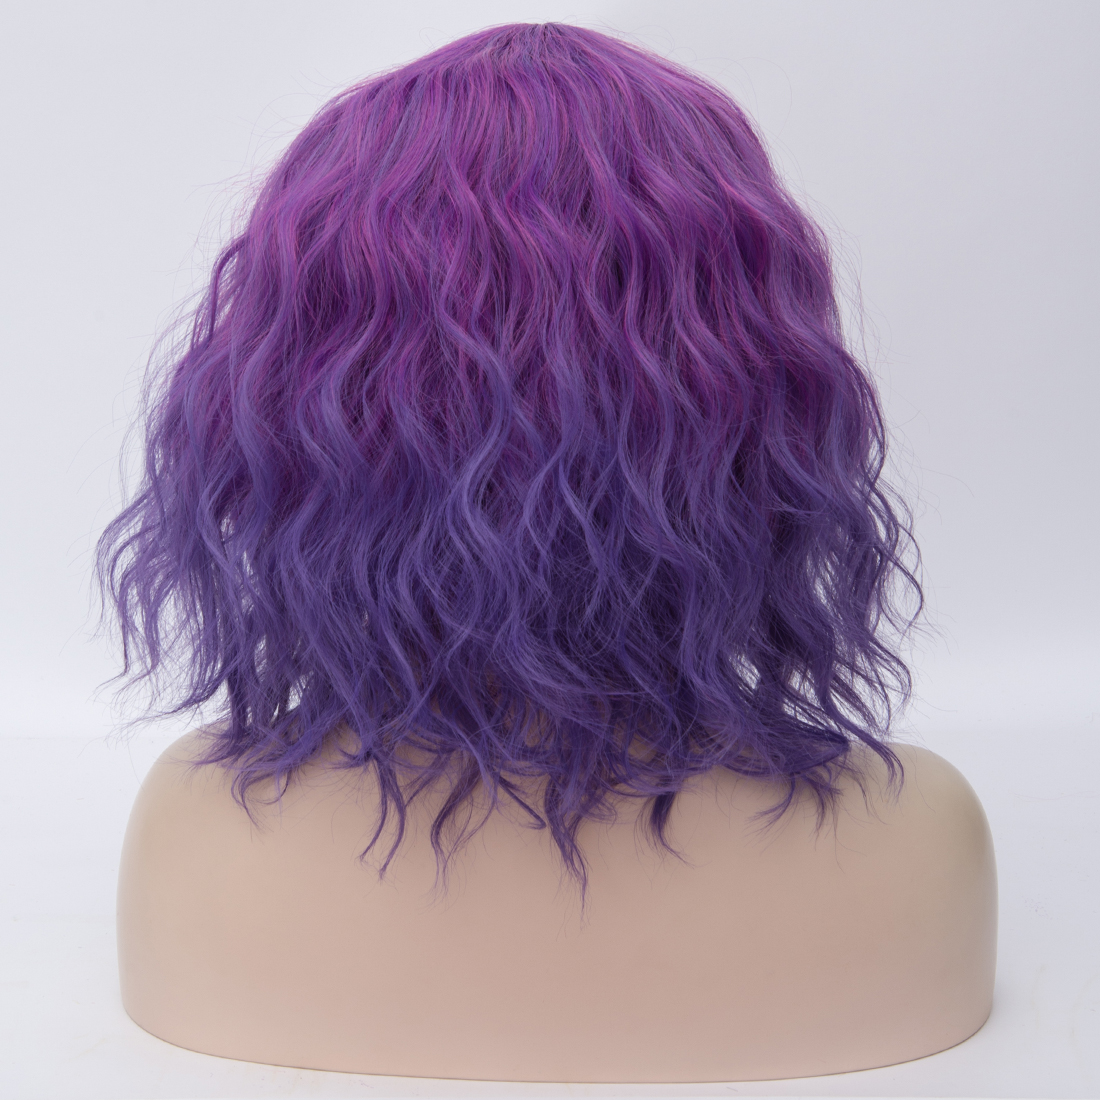 H64eff28e53764f2b81f70e83d64c381cV - Similler Short Synthetic Wig for Women Cosplay Curly Hair Heat Resistance Ombre Color Blue Purple Pink Green Orange Two Tones